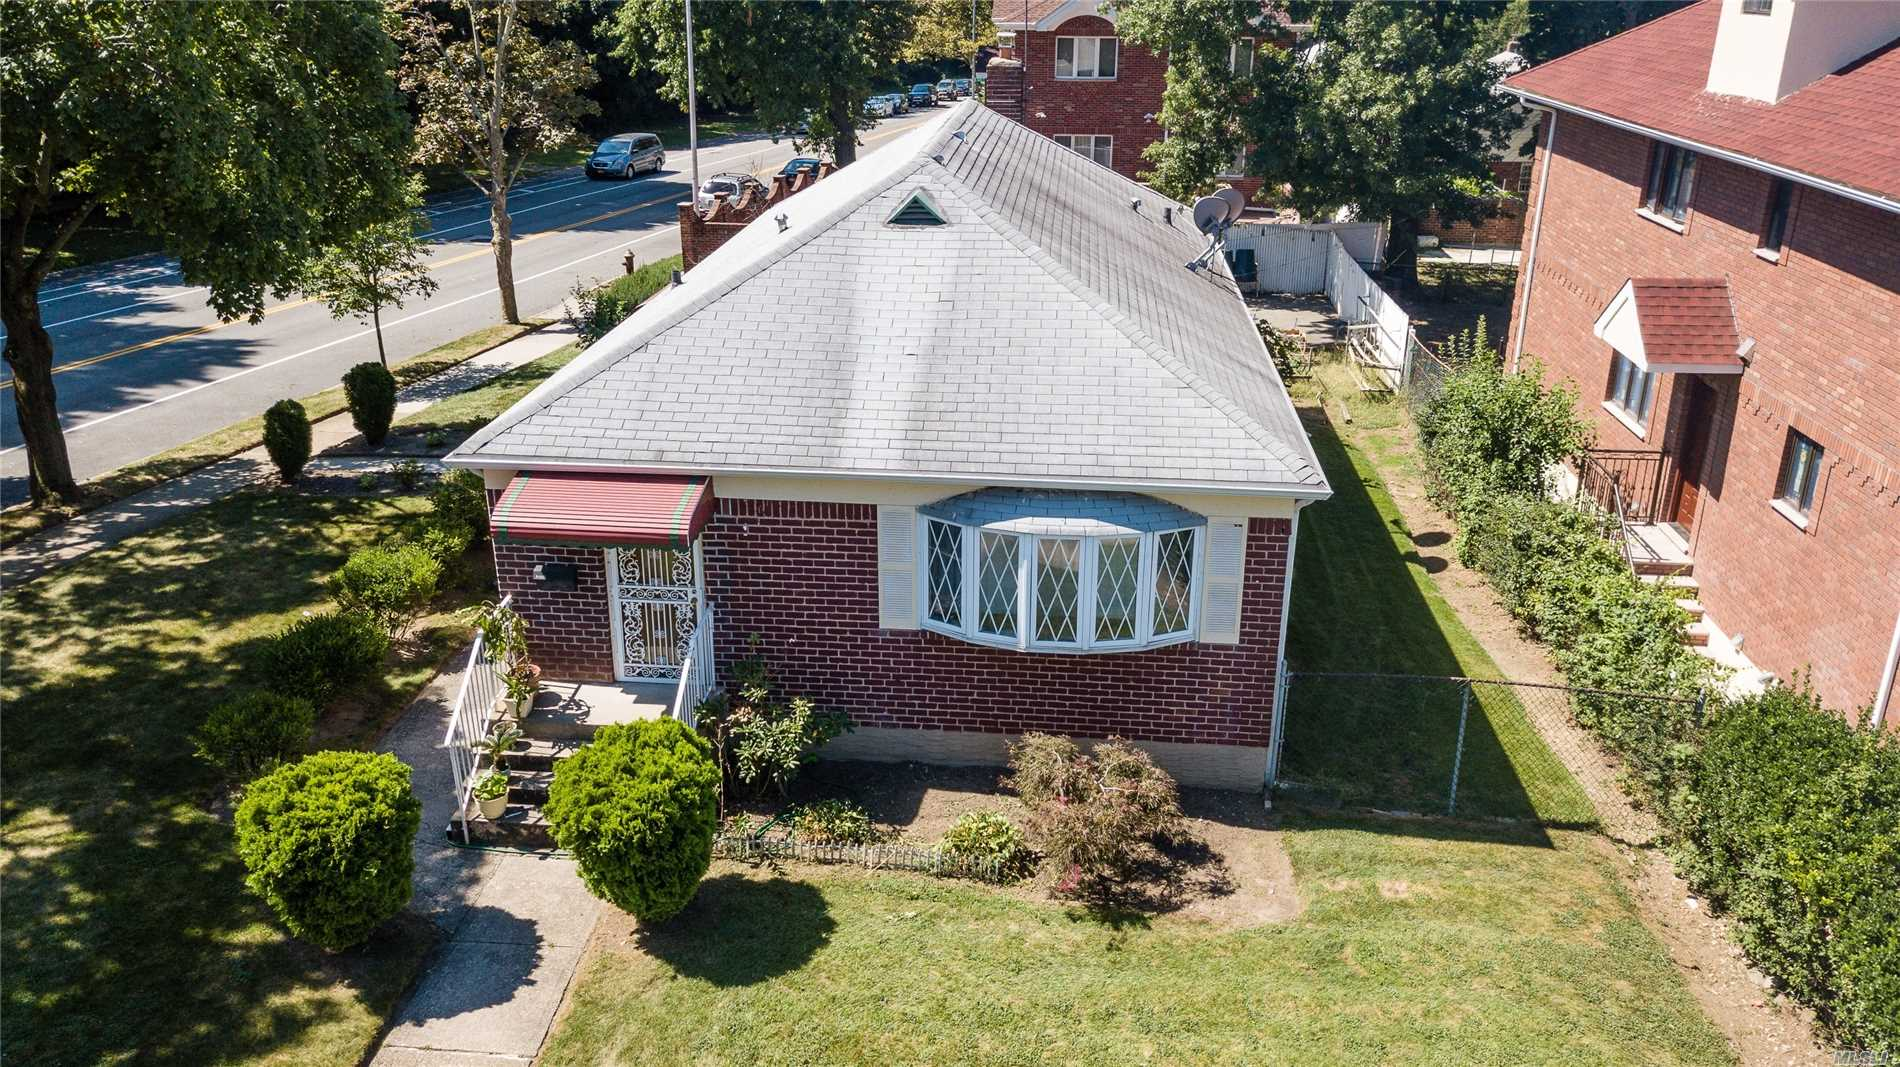 R3X Zoned For 2 Family In Desired Oakland Gardens With Renown School District 26. Very Rare Opportunity In Bayside For Investors To Own & Build On A Much Bigger Corner Lot. New Recently Sold Nearby 2 Family Homes That Were Built On Much Smaller 4000 Sq.Ft. Lots Were Listed Near $2M. What Can You Build On A 6000 Sq.Ft. Lot Instead? View The Fabulous Aerial Of This Lot & Neighborhood. Convenient To All Shopping & Transportation. Lie, Cip & Gcp Are Only Minutes Away.